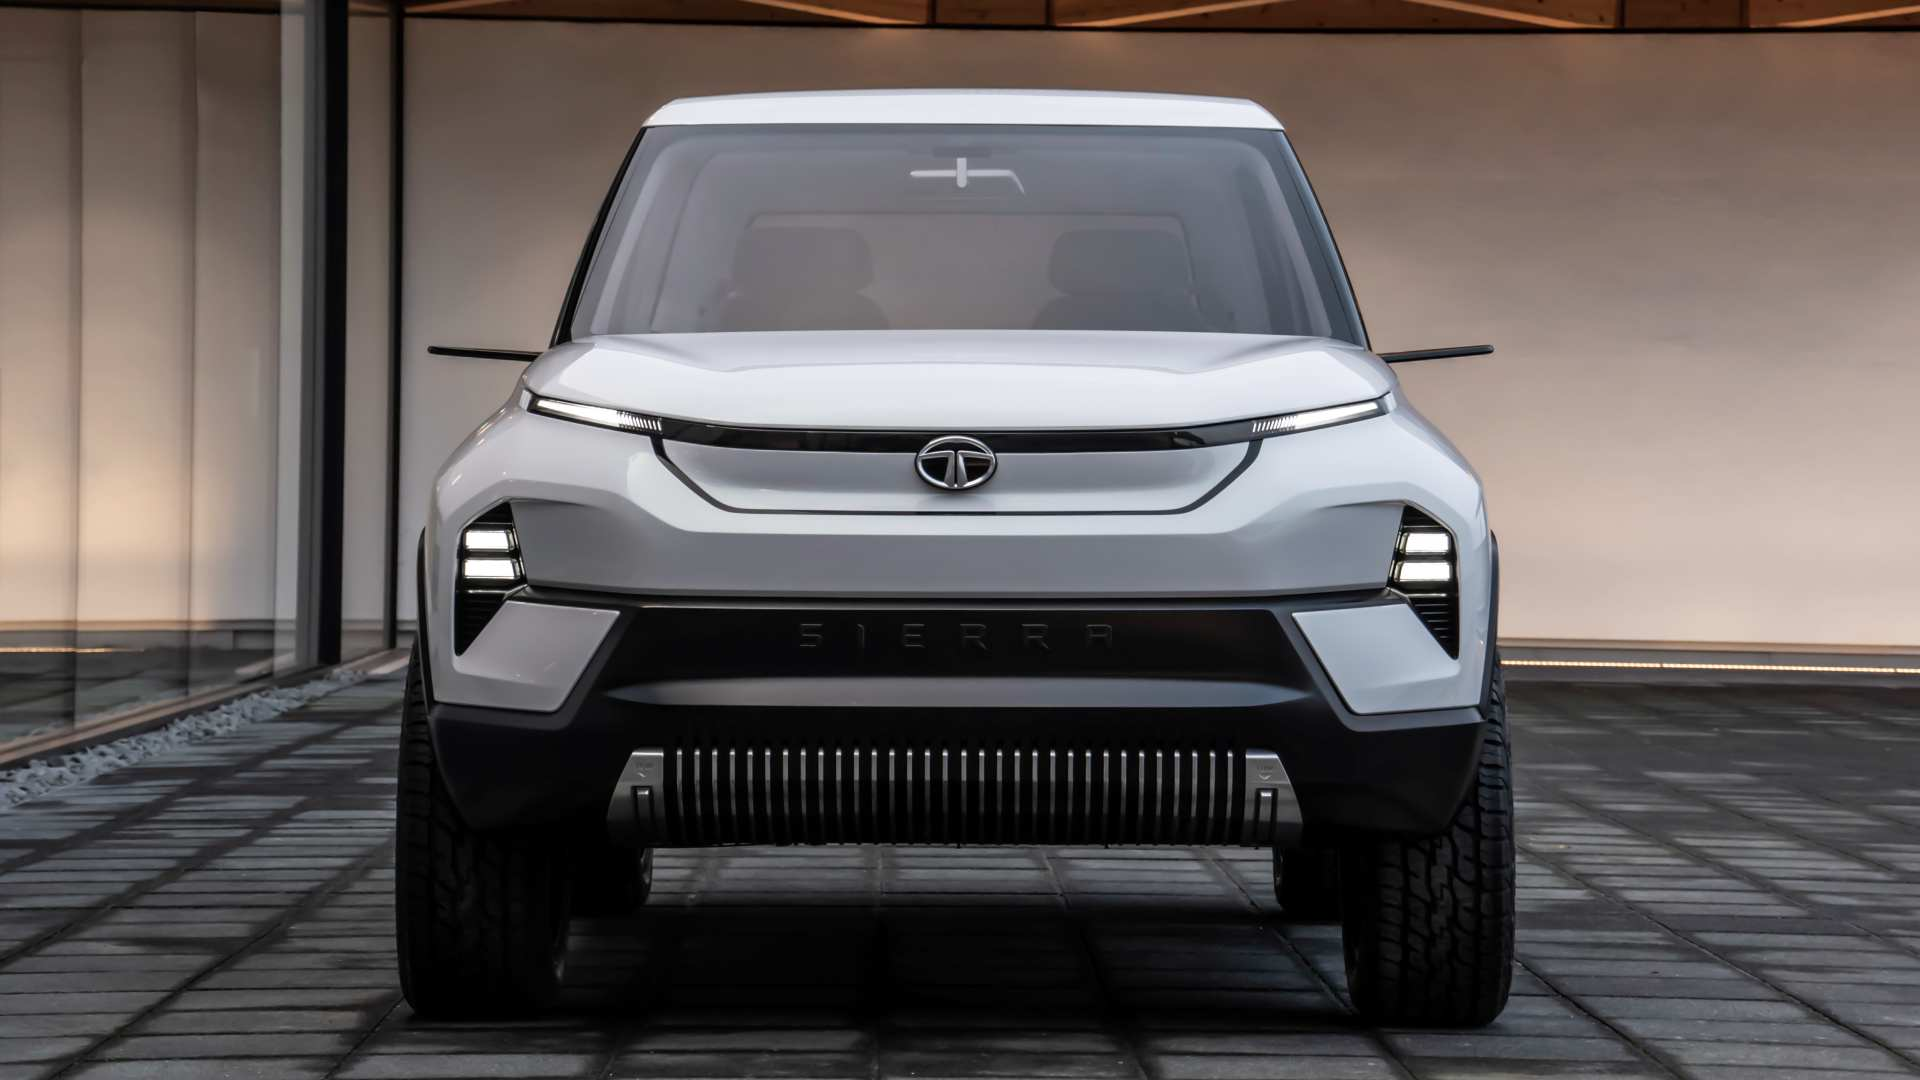 The reborn Tata Sierra is one of the all-new, all-electric models Tata Motors has showcased in the past. Image: Tata Motors